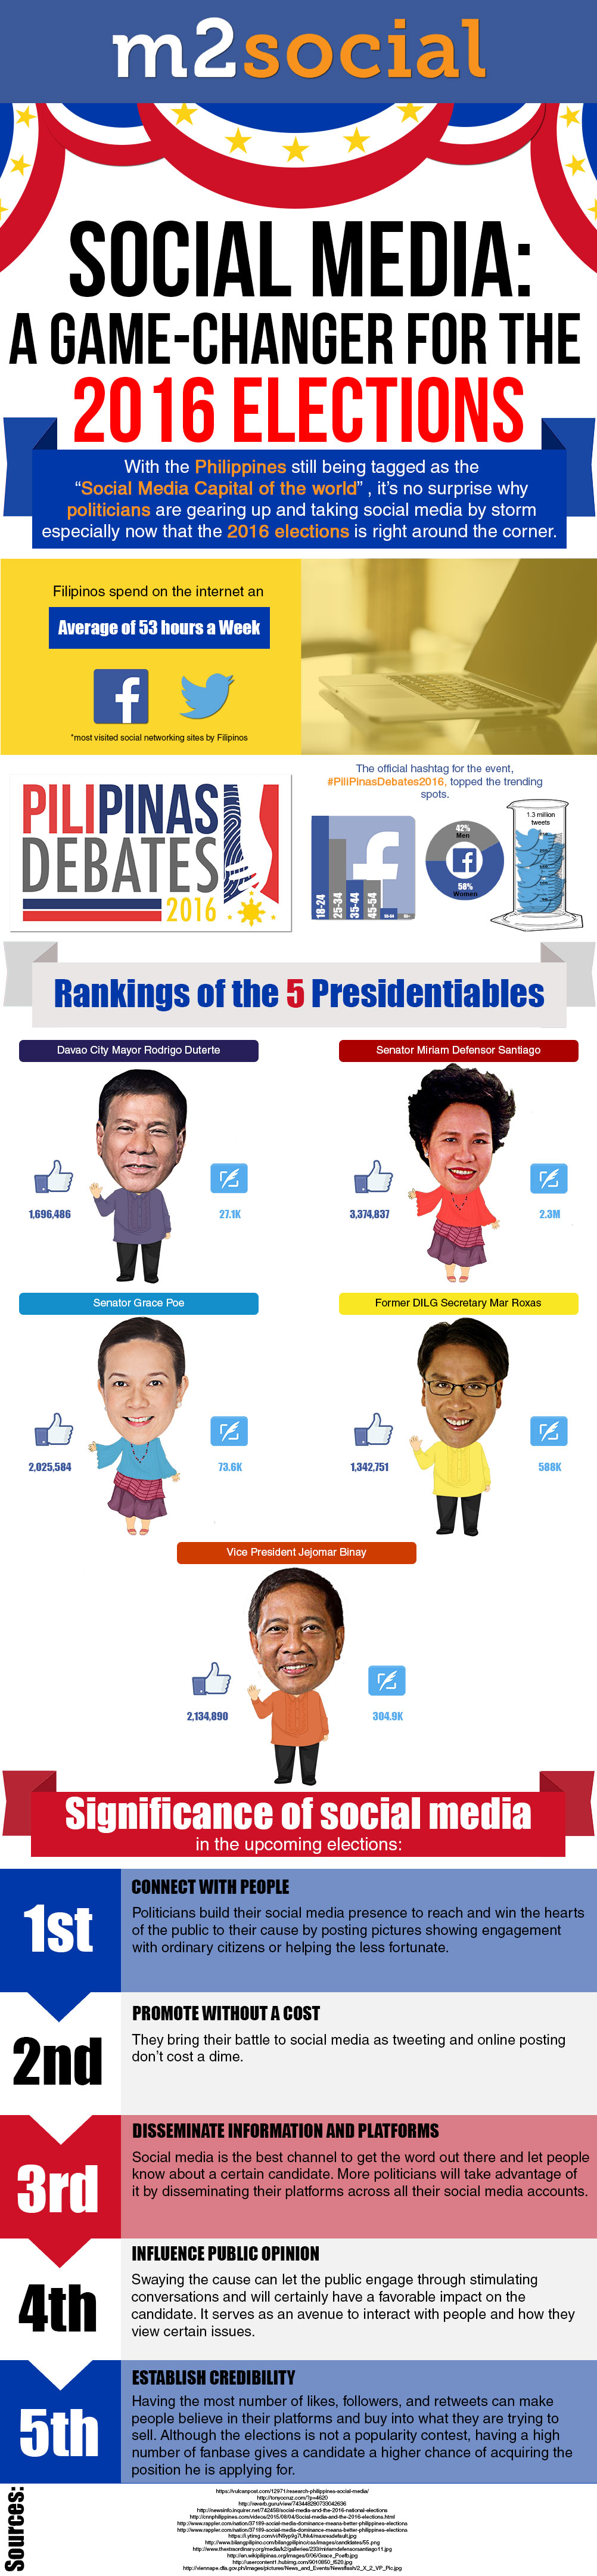 Social Media: A Game-changer for the 2016 Elections